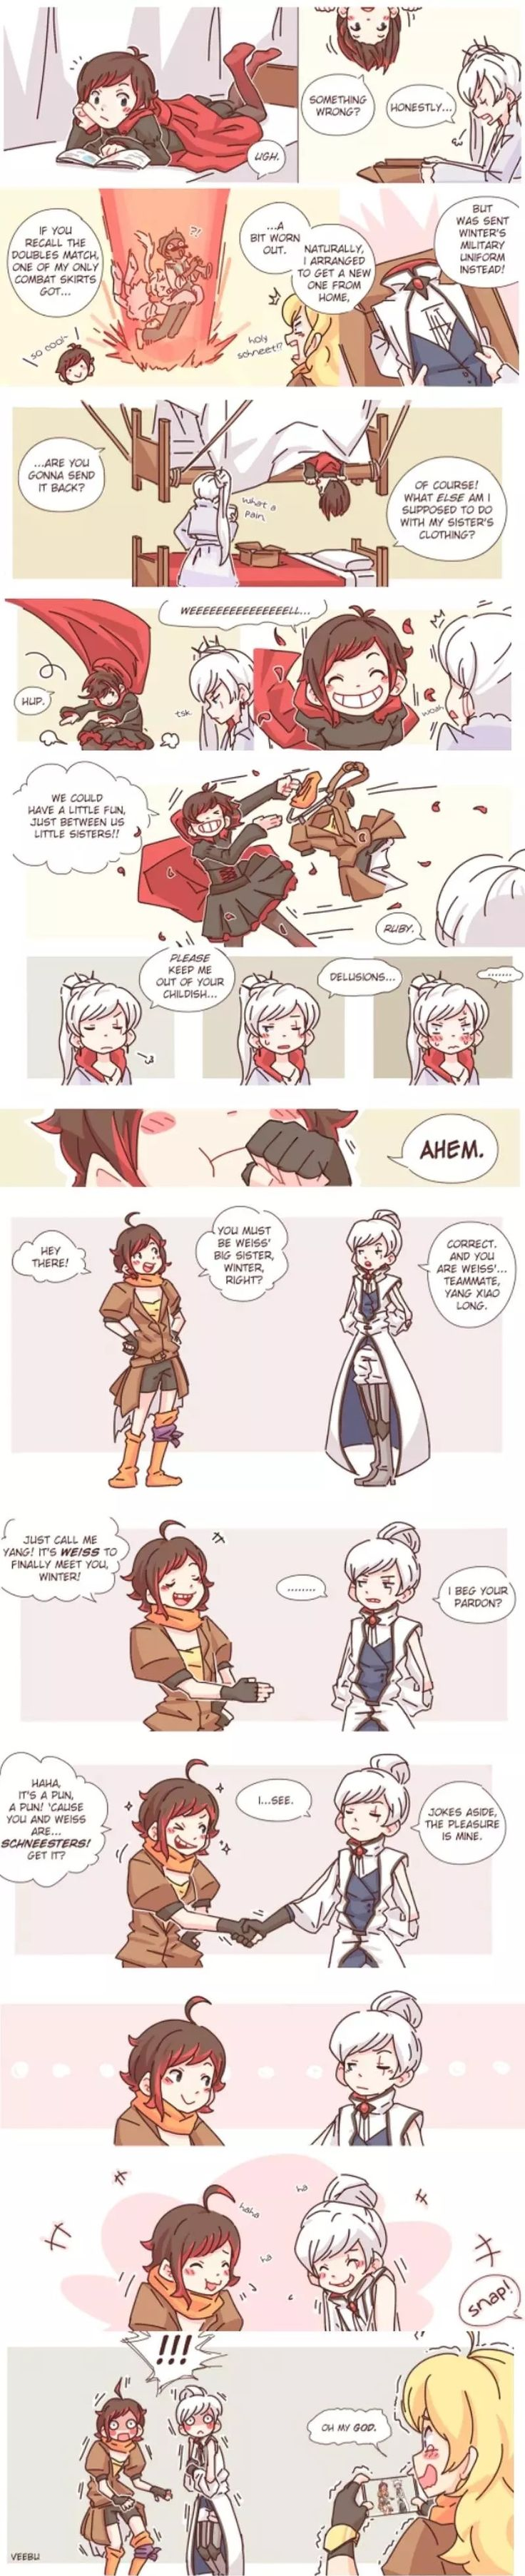 RWBY - Sisters become older sisters.